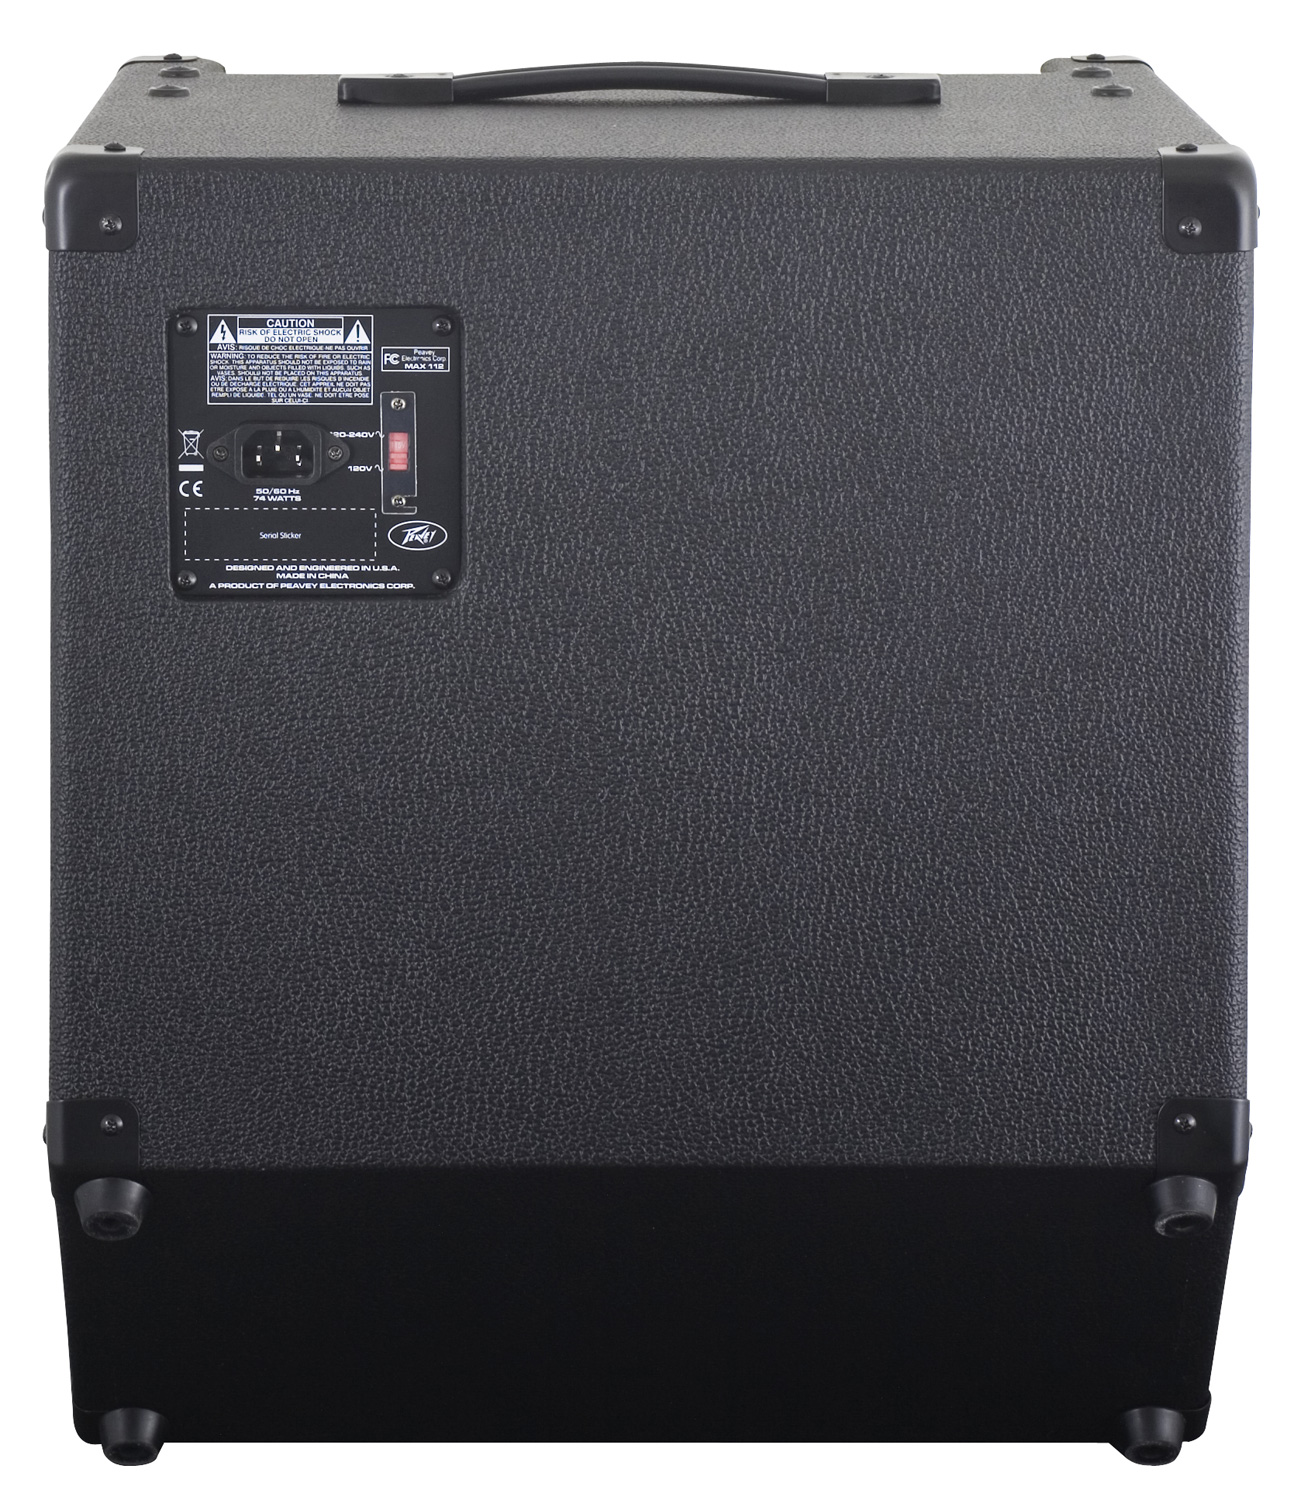 peavey max 112 electric bass guitar combo 200w amp 12 speaker amplifier pev13 3608000 rs. Black Bedroom Furniture Sets. Home Design Ideas